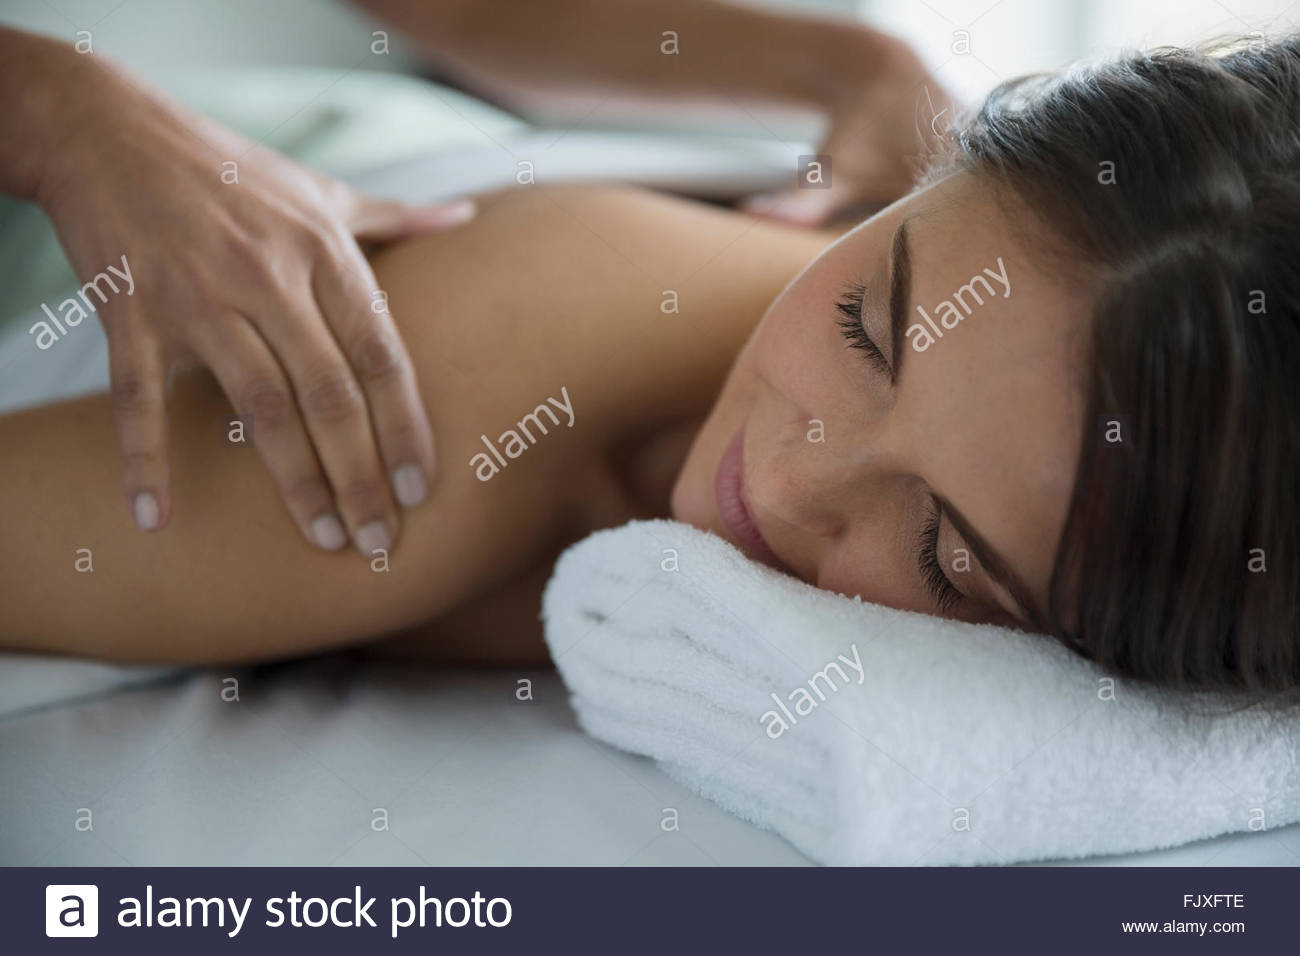 Woman receiving back massage - Stock Image